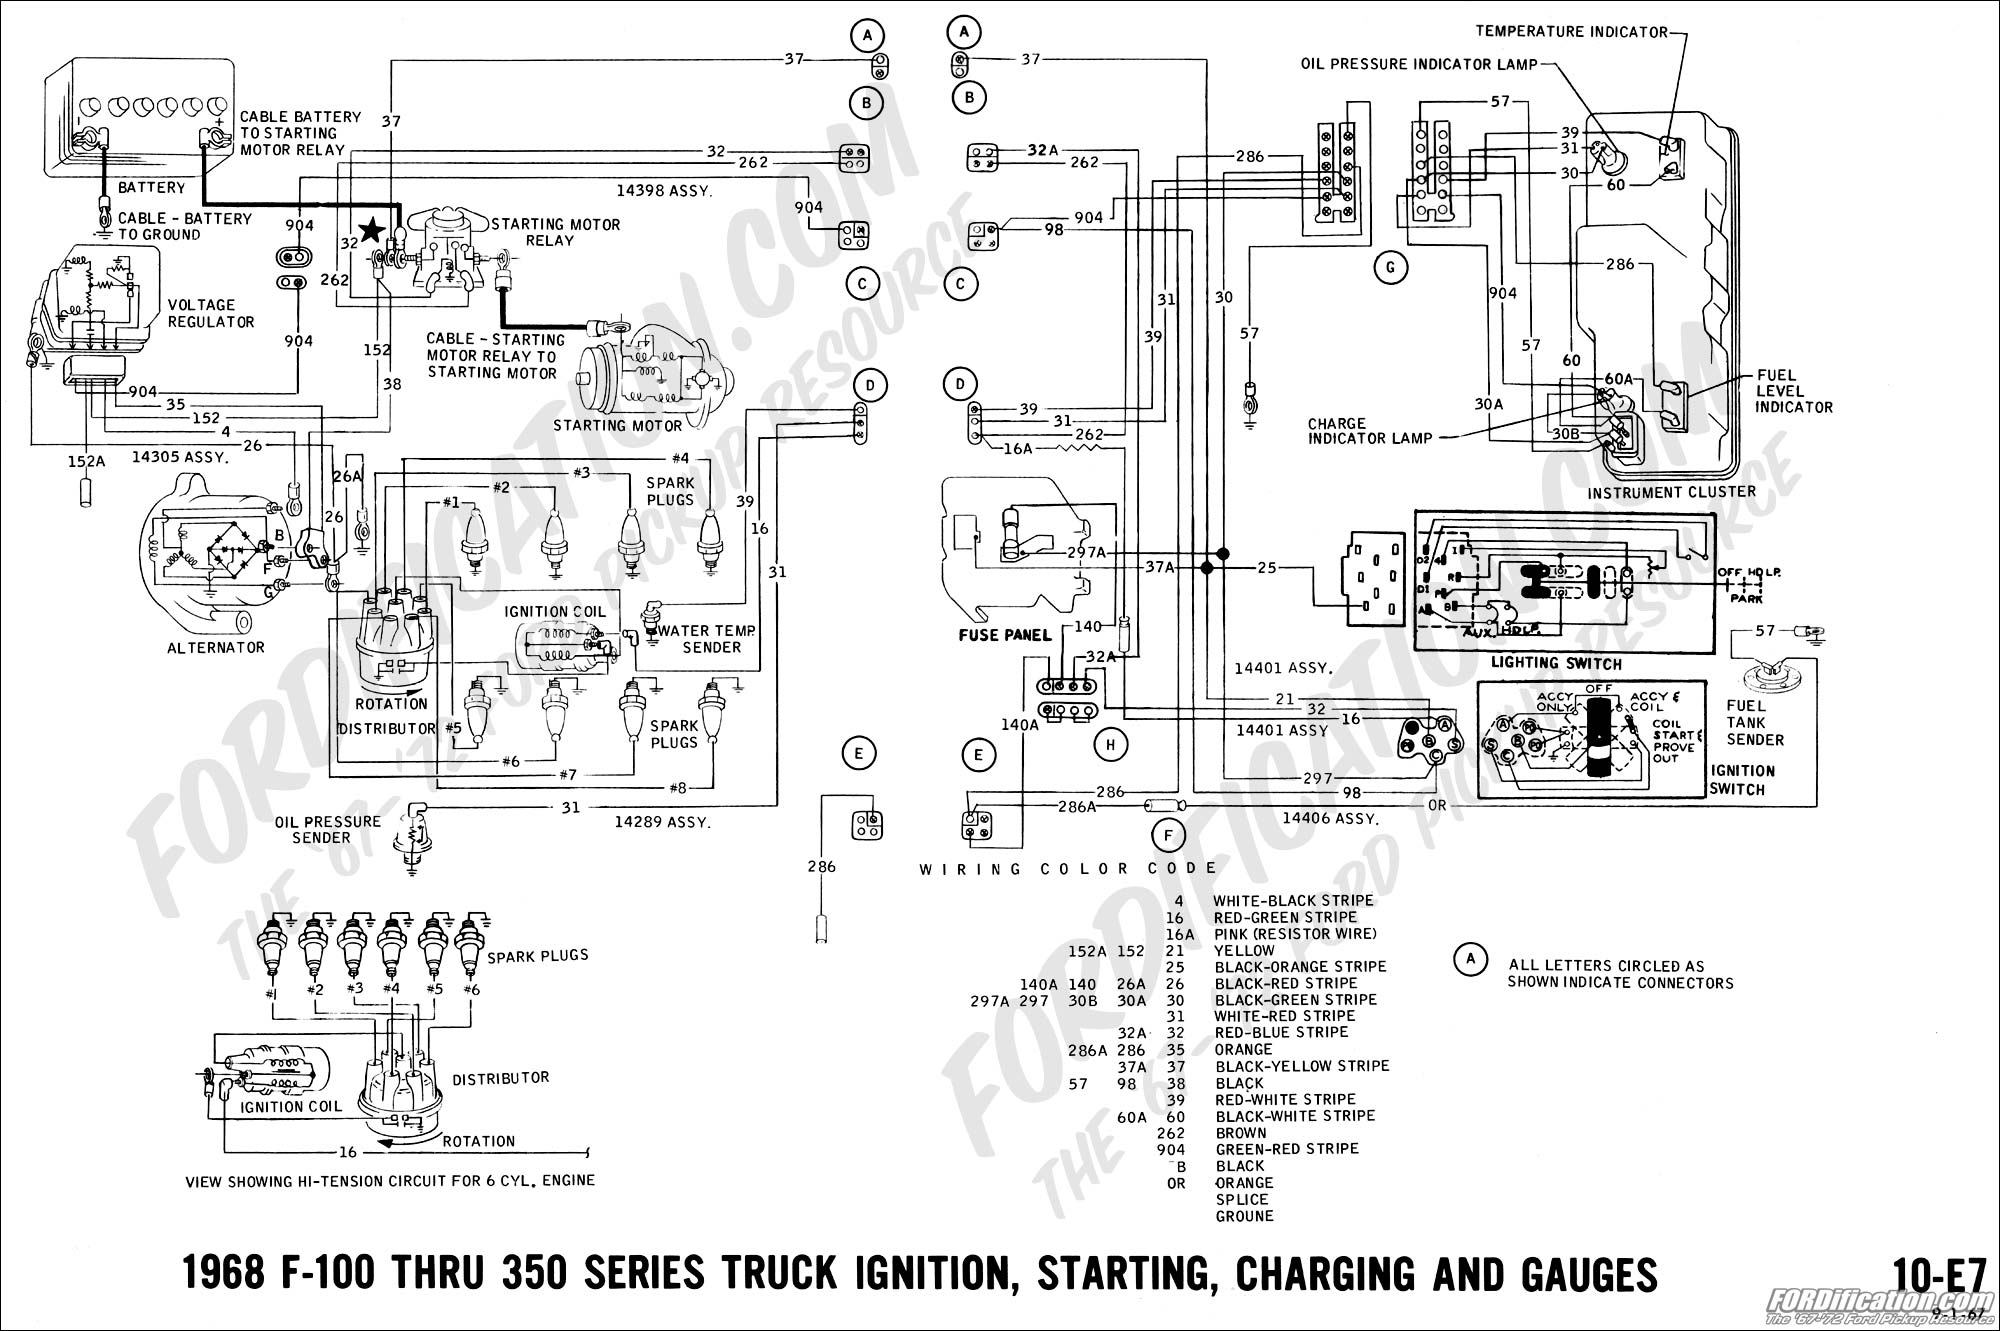 Point Type Ignition Wiring Schematic Library Singer Refrigerator Diagram Distributor 1968 F 100 Thru 350 Starting Charging And Gauges